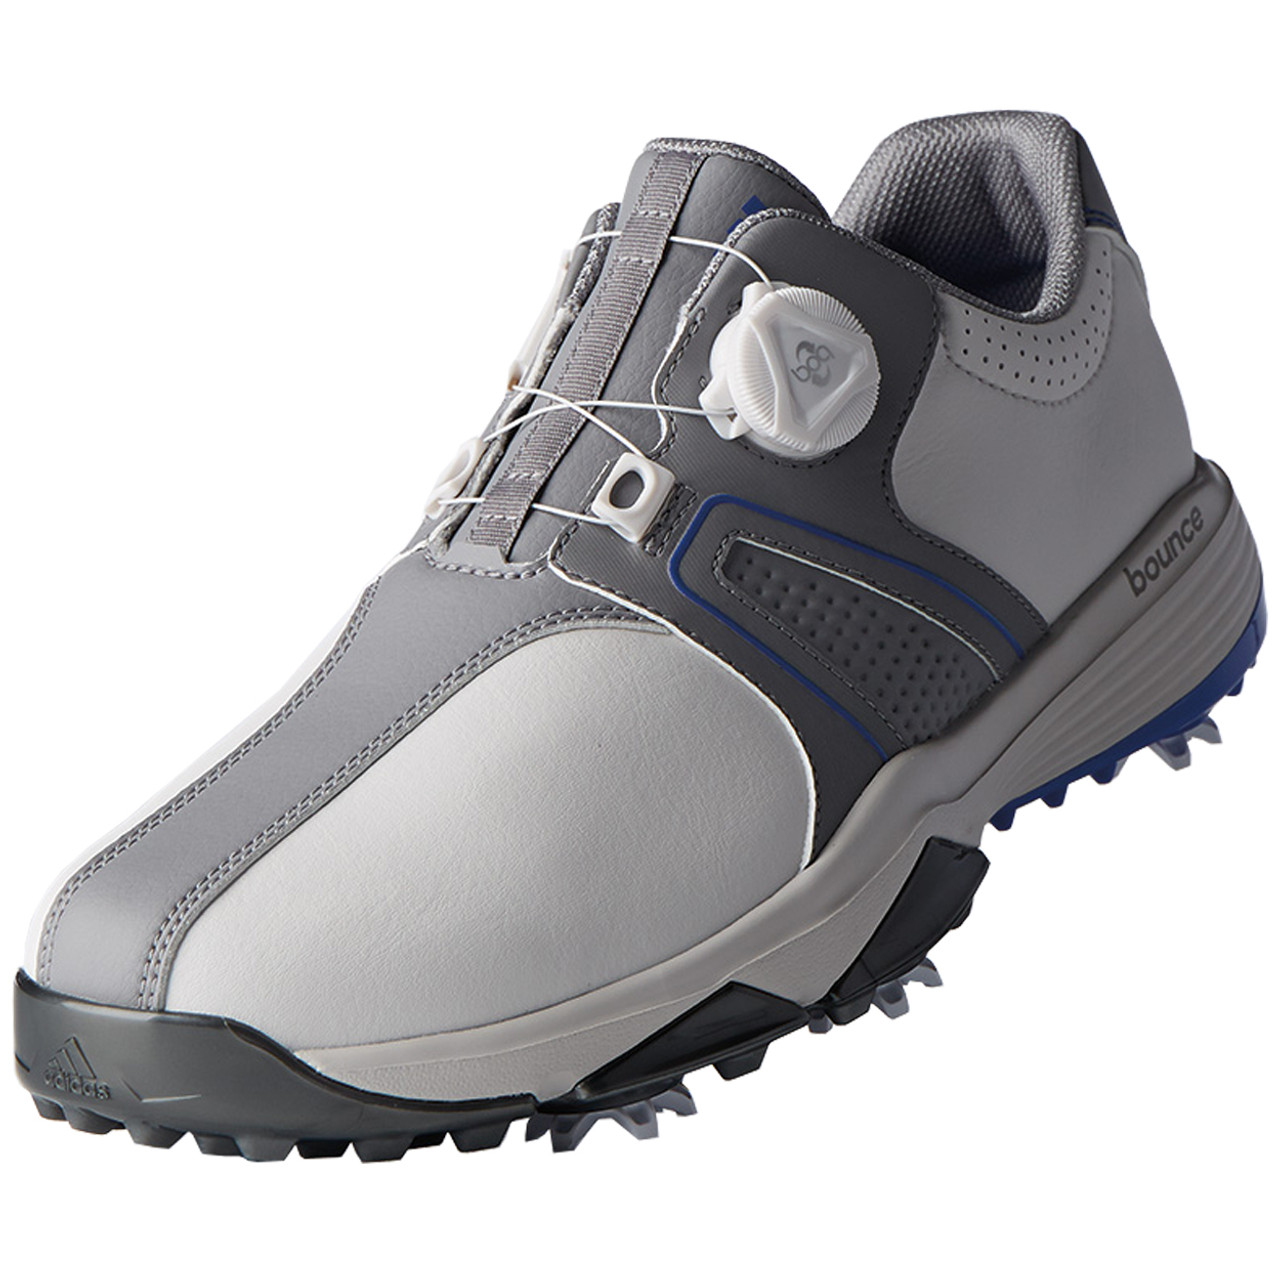 Adidas 360 Traxion Golf Shoes with Boa Closure